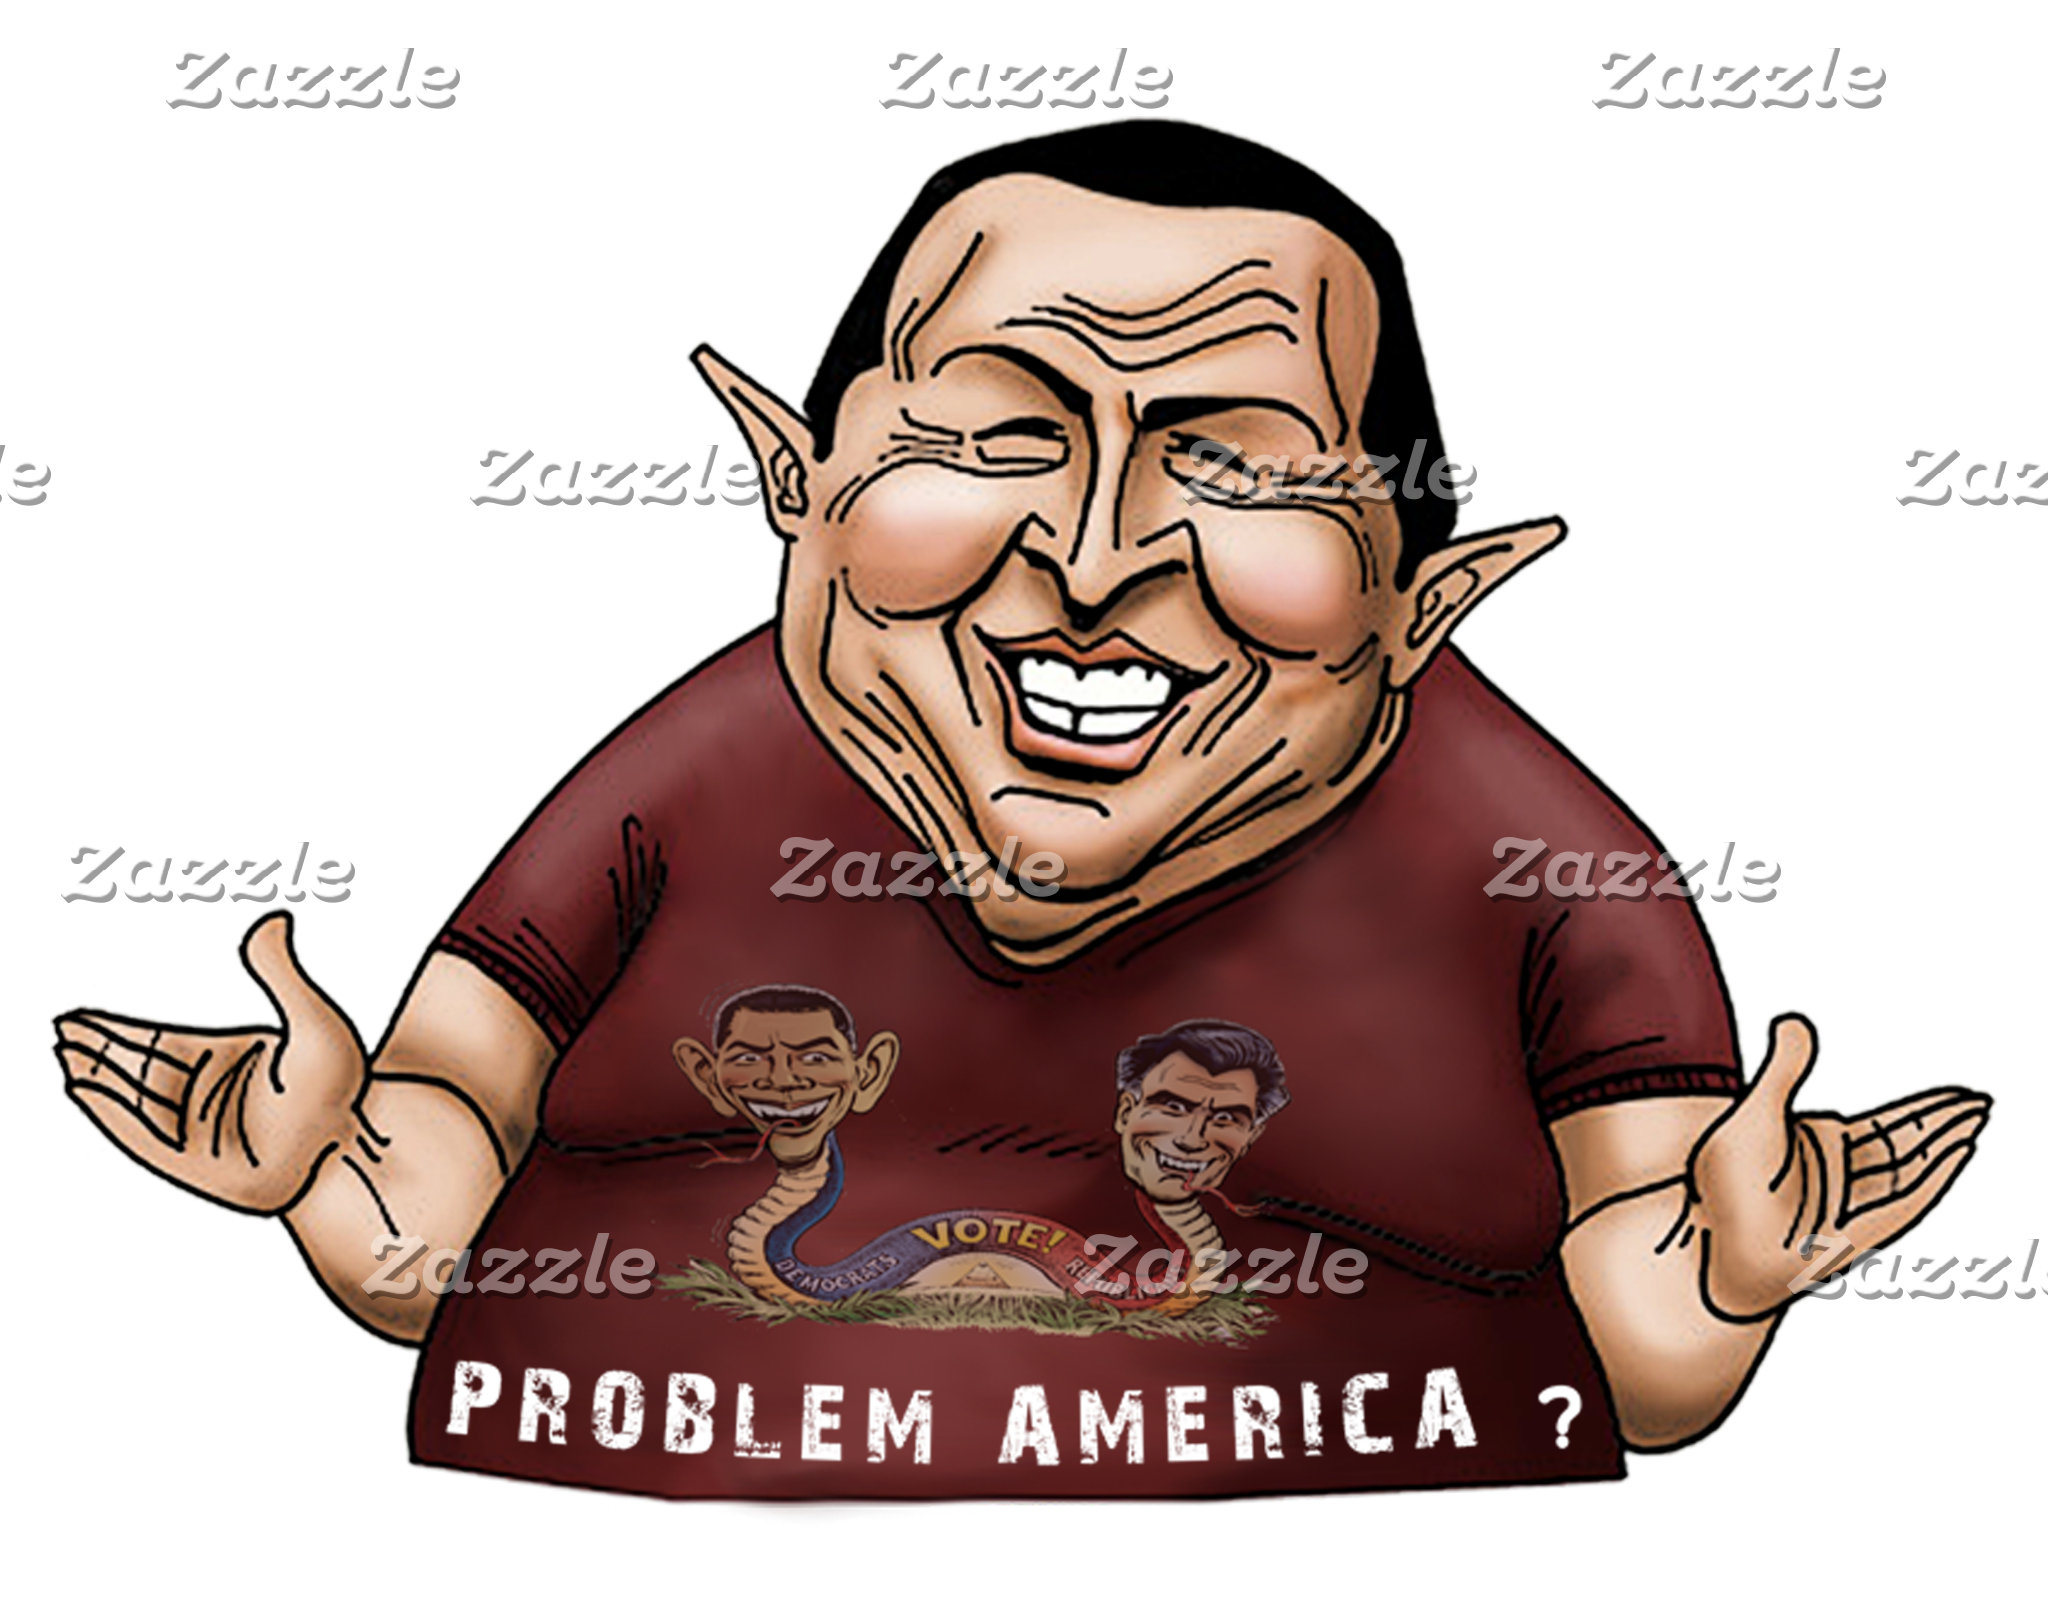 [NEW] Hugo Chavez - Problem America style